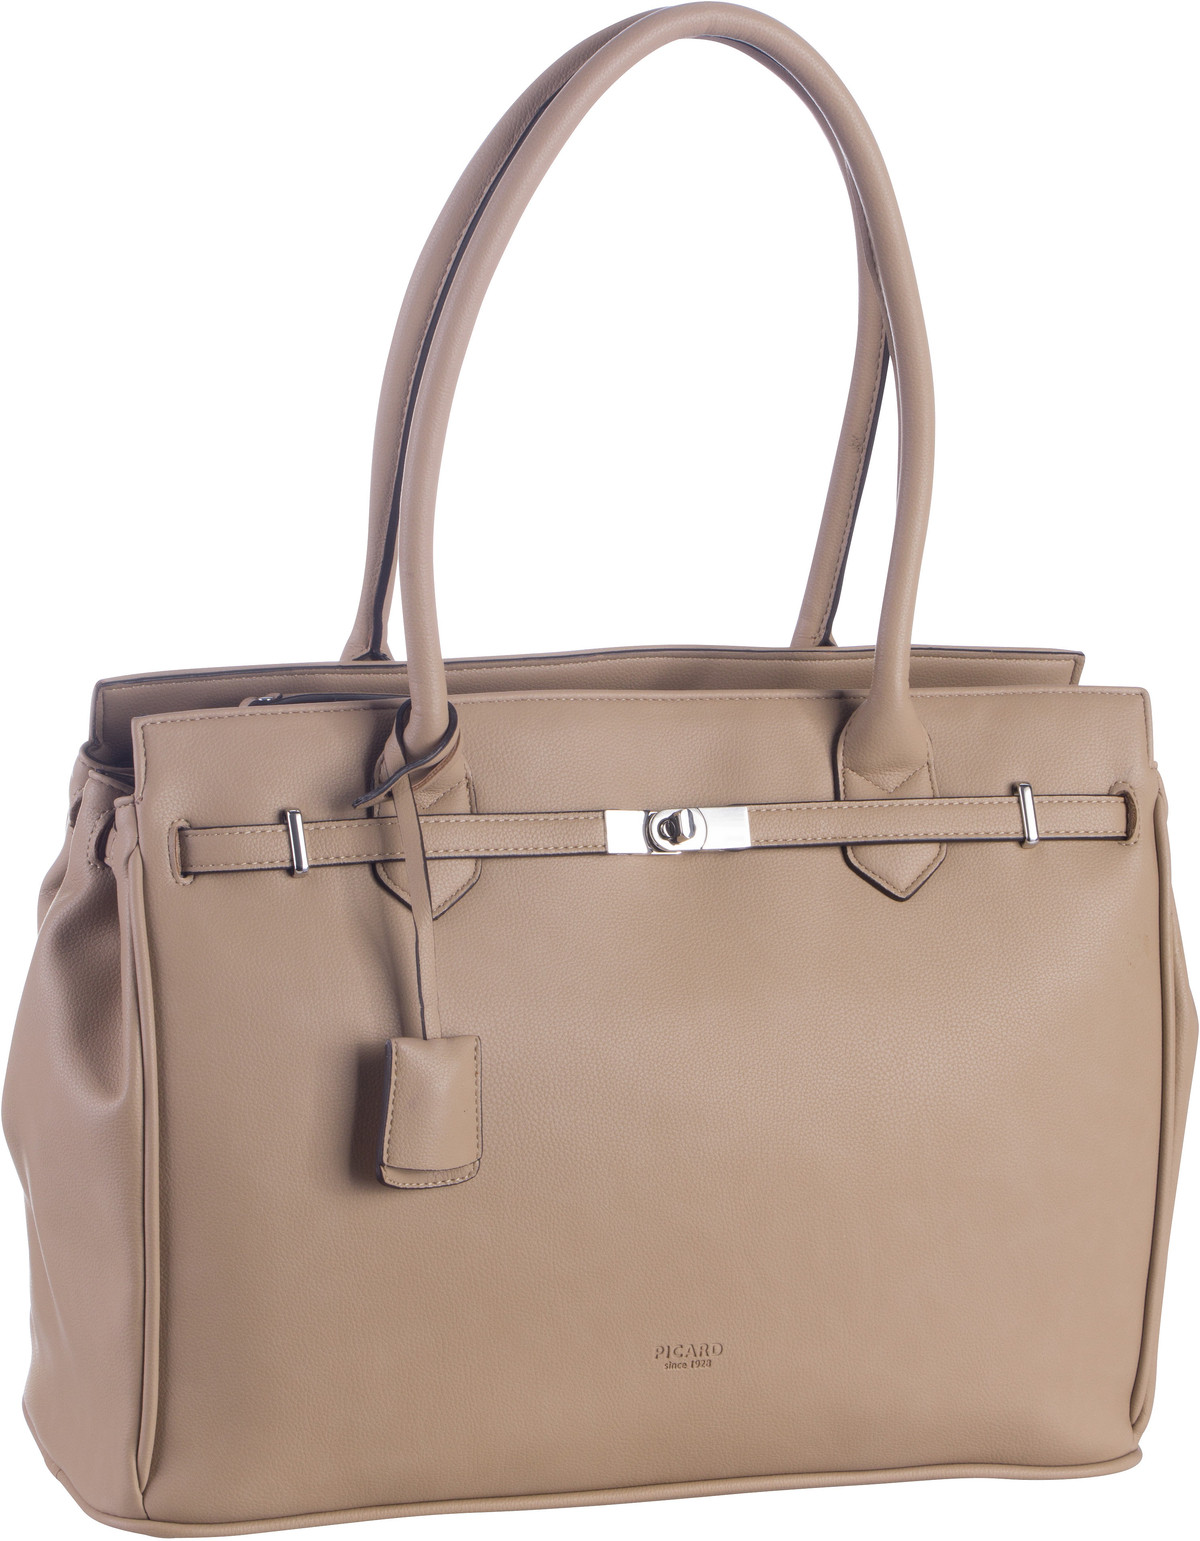 Handtasche New York 9680 Stone